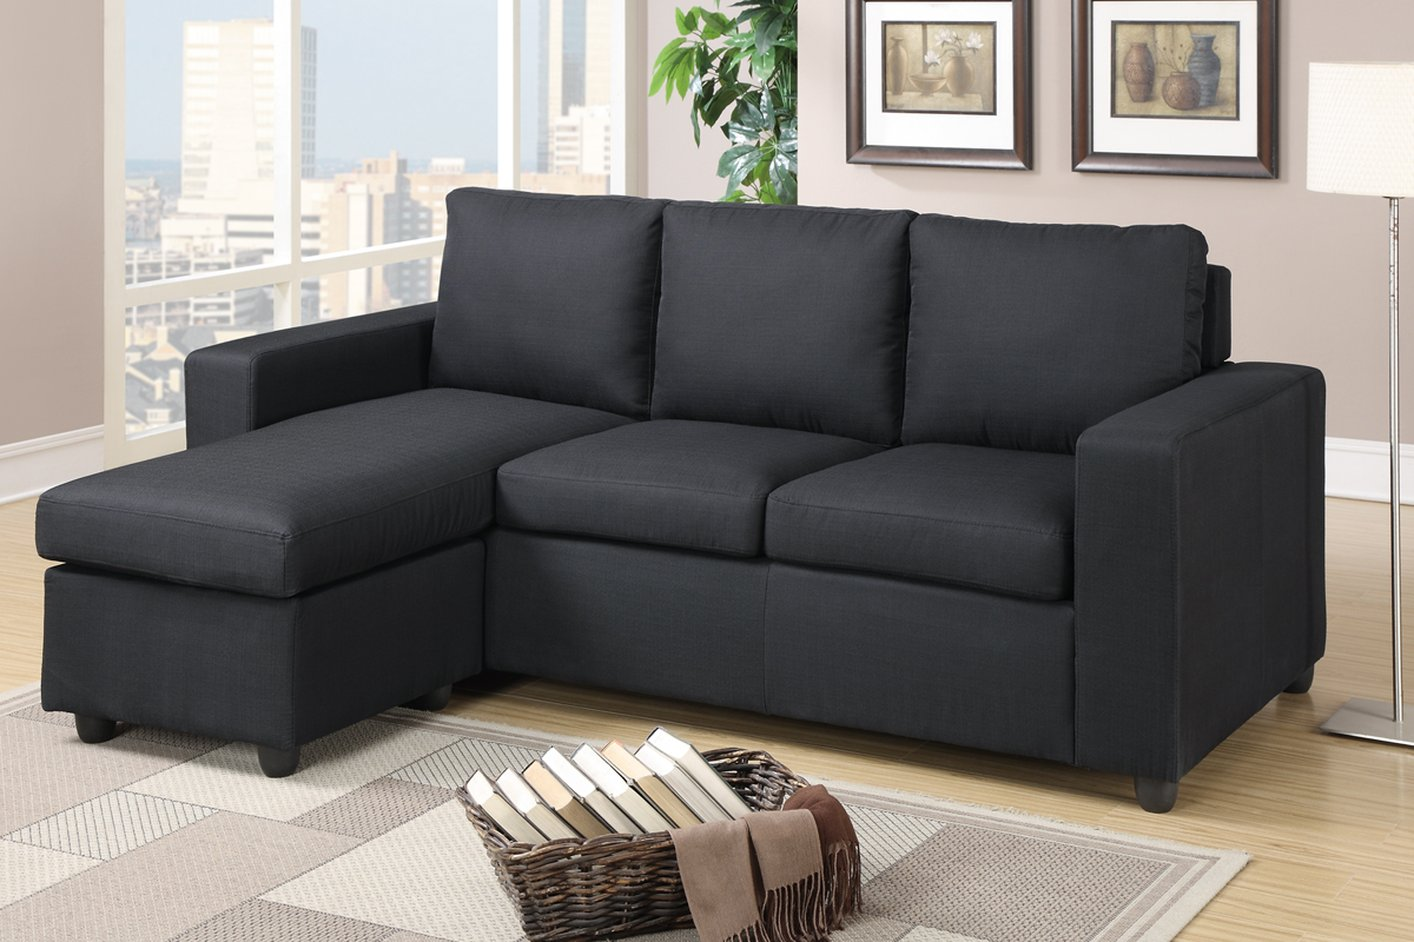 Poundex Akeneo F7490 Black Fabric Sectional Sofa Steal A